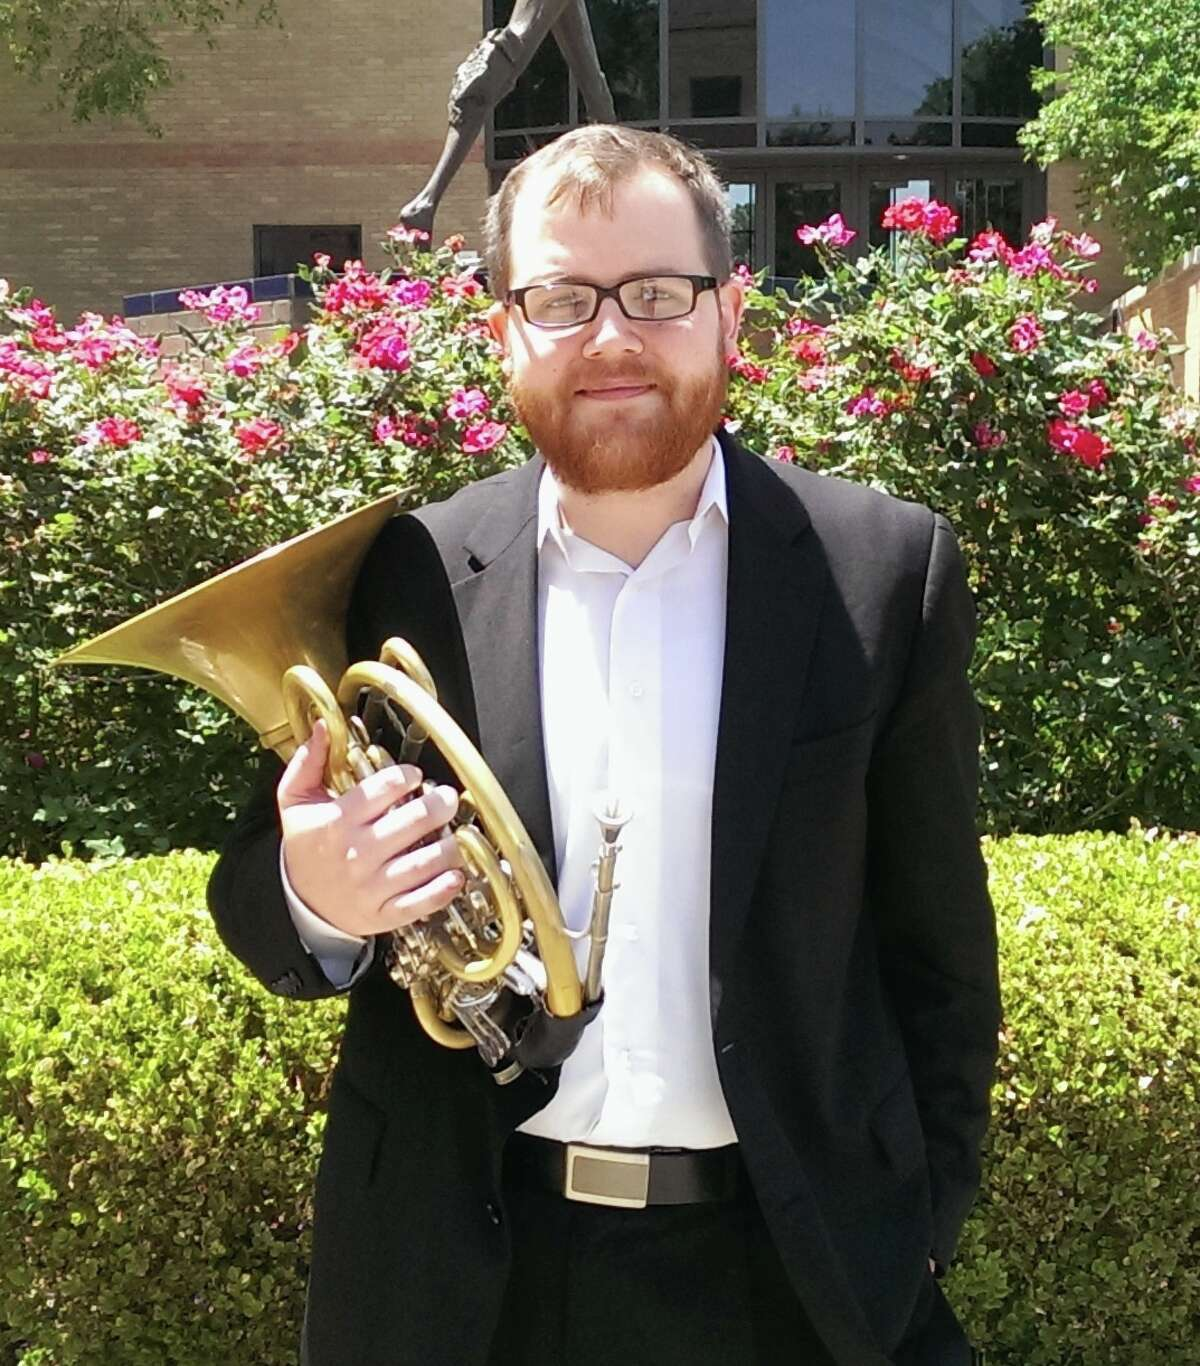 Aaron Griffin, Horn é± Aaron is from Pasadena and took up horn in 5th grade because éit looked the neatest and no one else wanted to play it.é His best friend Steven Winter, has been a huge influence on Aaronés music career. Winter has a Masters of Music from the New England Conservatory and was Aaronés teacher his senior year at South Houston High School. They have performed in many ensembles together and to this day he continues to teach and inspire Aaron to play the horn. Aaron is studying horn performance at UH Moores School of Music with Gavin Reed. At UH, Aaron has played at the top of all of the ensembles and is principal of the Wind Ensemble. He is an active freelancer and has taught at many schools in the Greater Houston Area. Other primary teachers include his best friend, Steven Winter, and Kevin McIntyre. In his spare time, Aaron enjoys playing disc golf and collecting classical albums. Highlights of his musical career are: Touring with the HBU Choir across Texas, Oklahoma and Arkansas, Performing Beethoven 7 with the UH Moores School of Music Symphony Orchestra and traveling to the Midwest Clinic with the UH Wind Ensemble and Symphony Orchestra. He wants to perform with any major US orchestra, but mainly the Chicago Symphony. This will be Aaronés second year to participate in the Texas Music Festival. éI have had many friends perform at this Festival and wanted to join the club.é